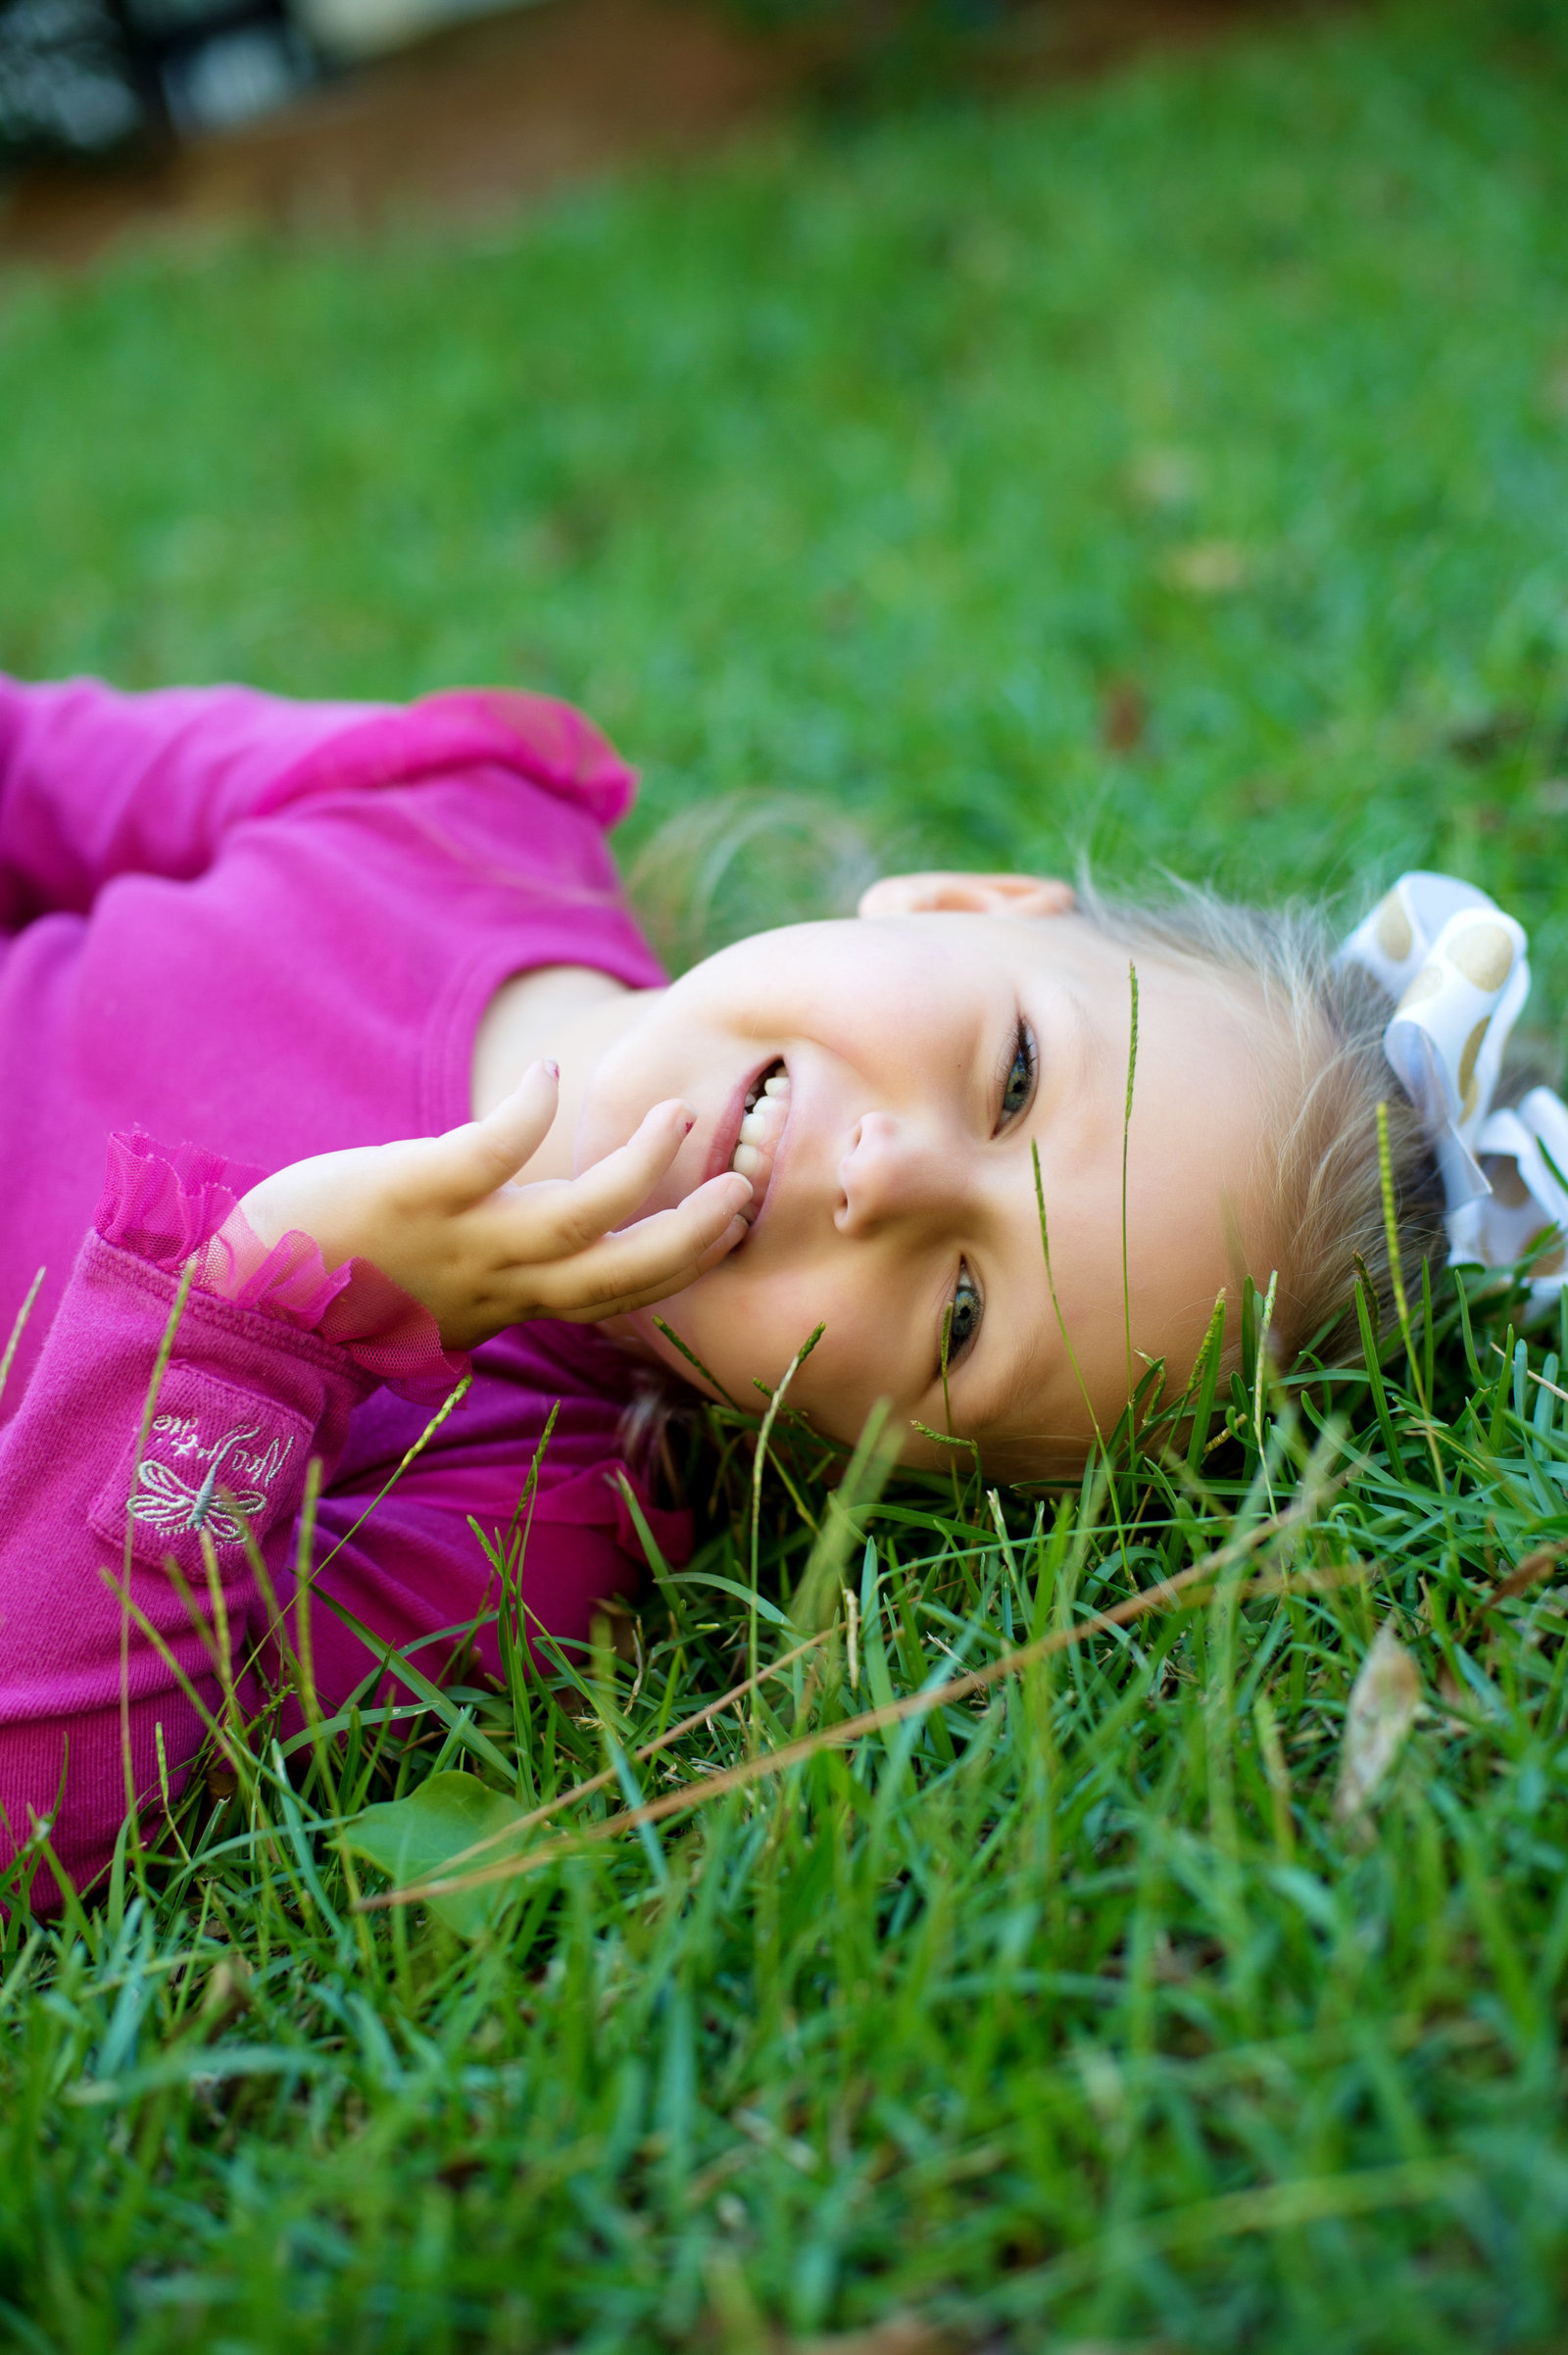 a girl lays in the grass and laughs